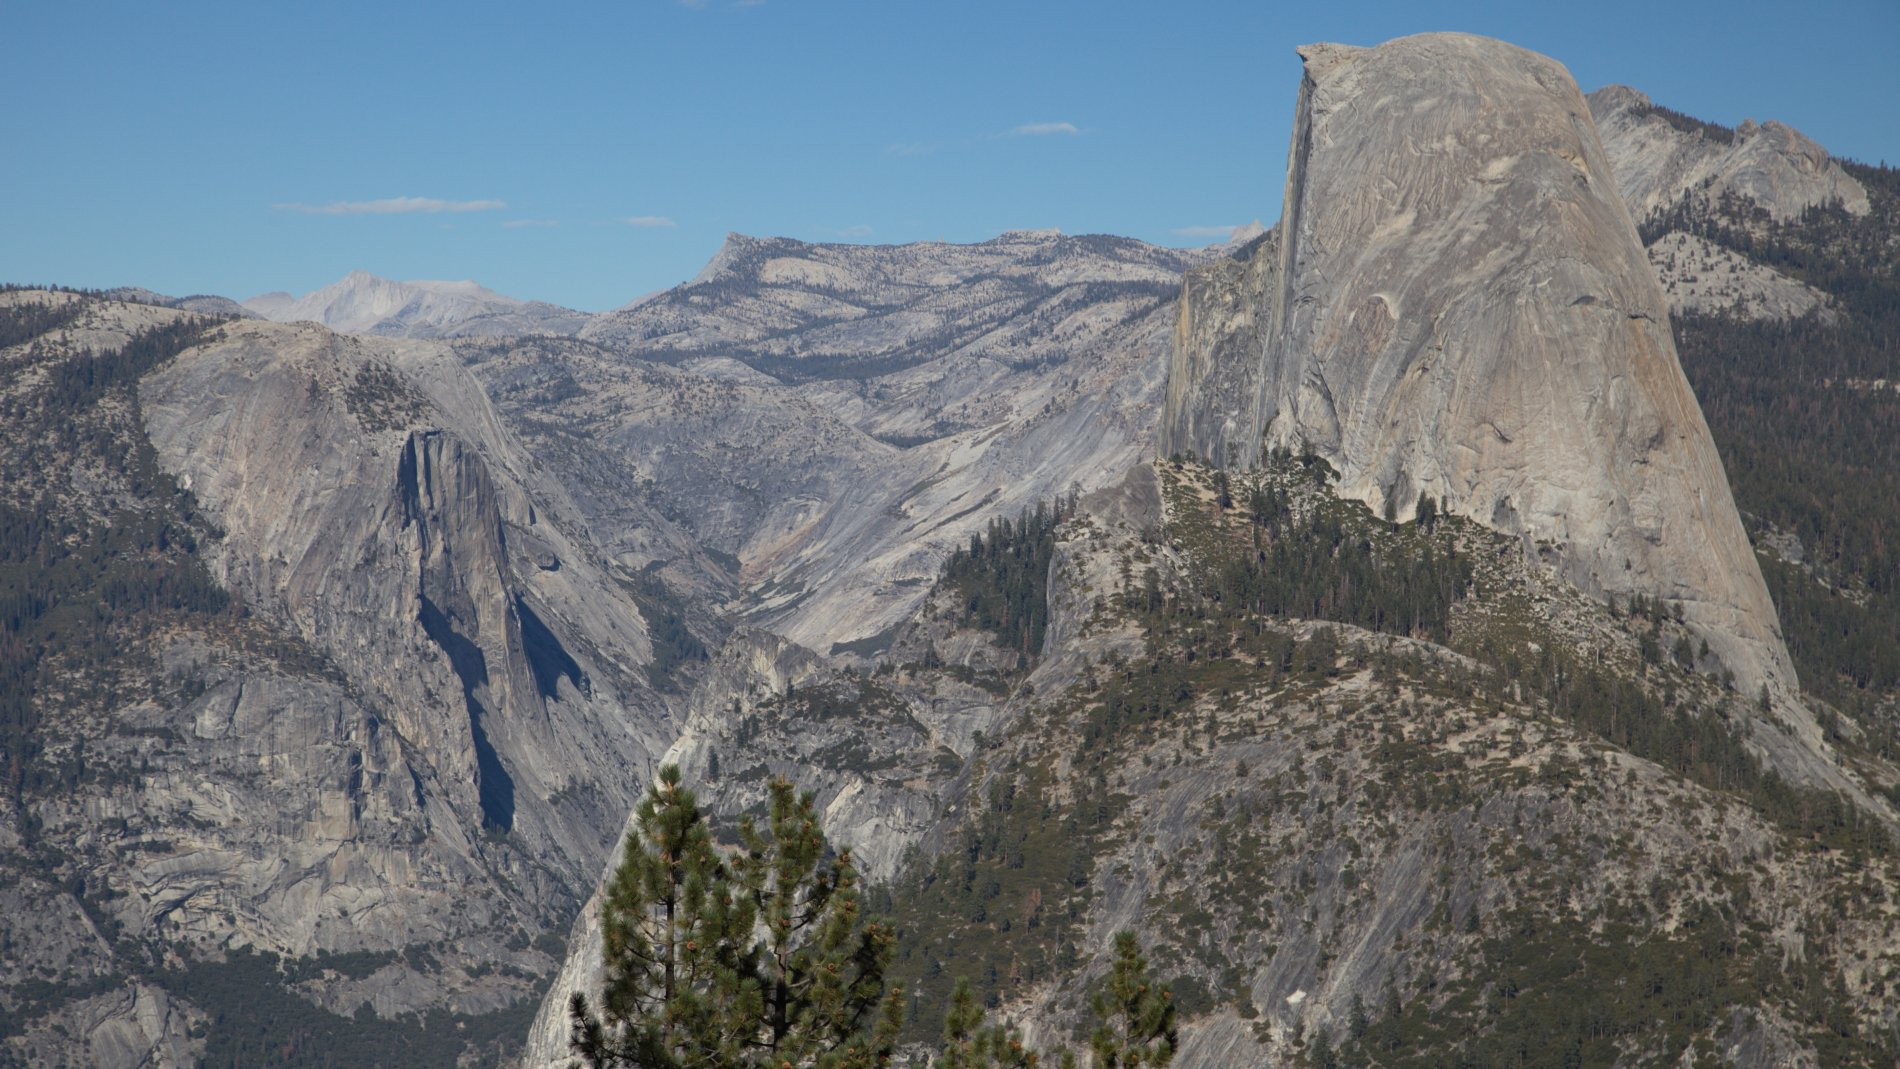 IMG_1343.jpg: Half Dome and the Valley, Yosemite Park